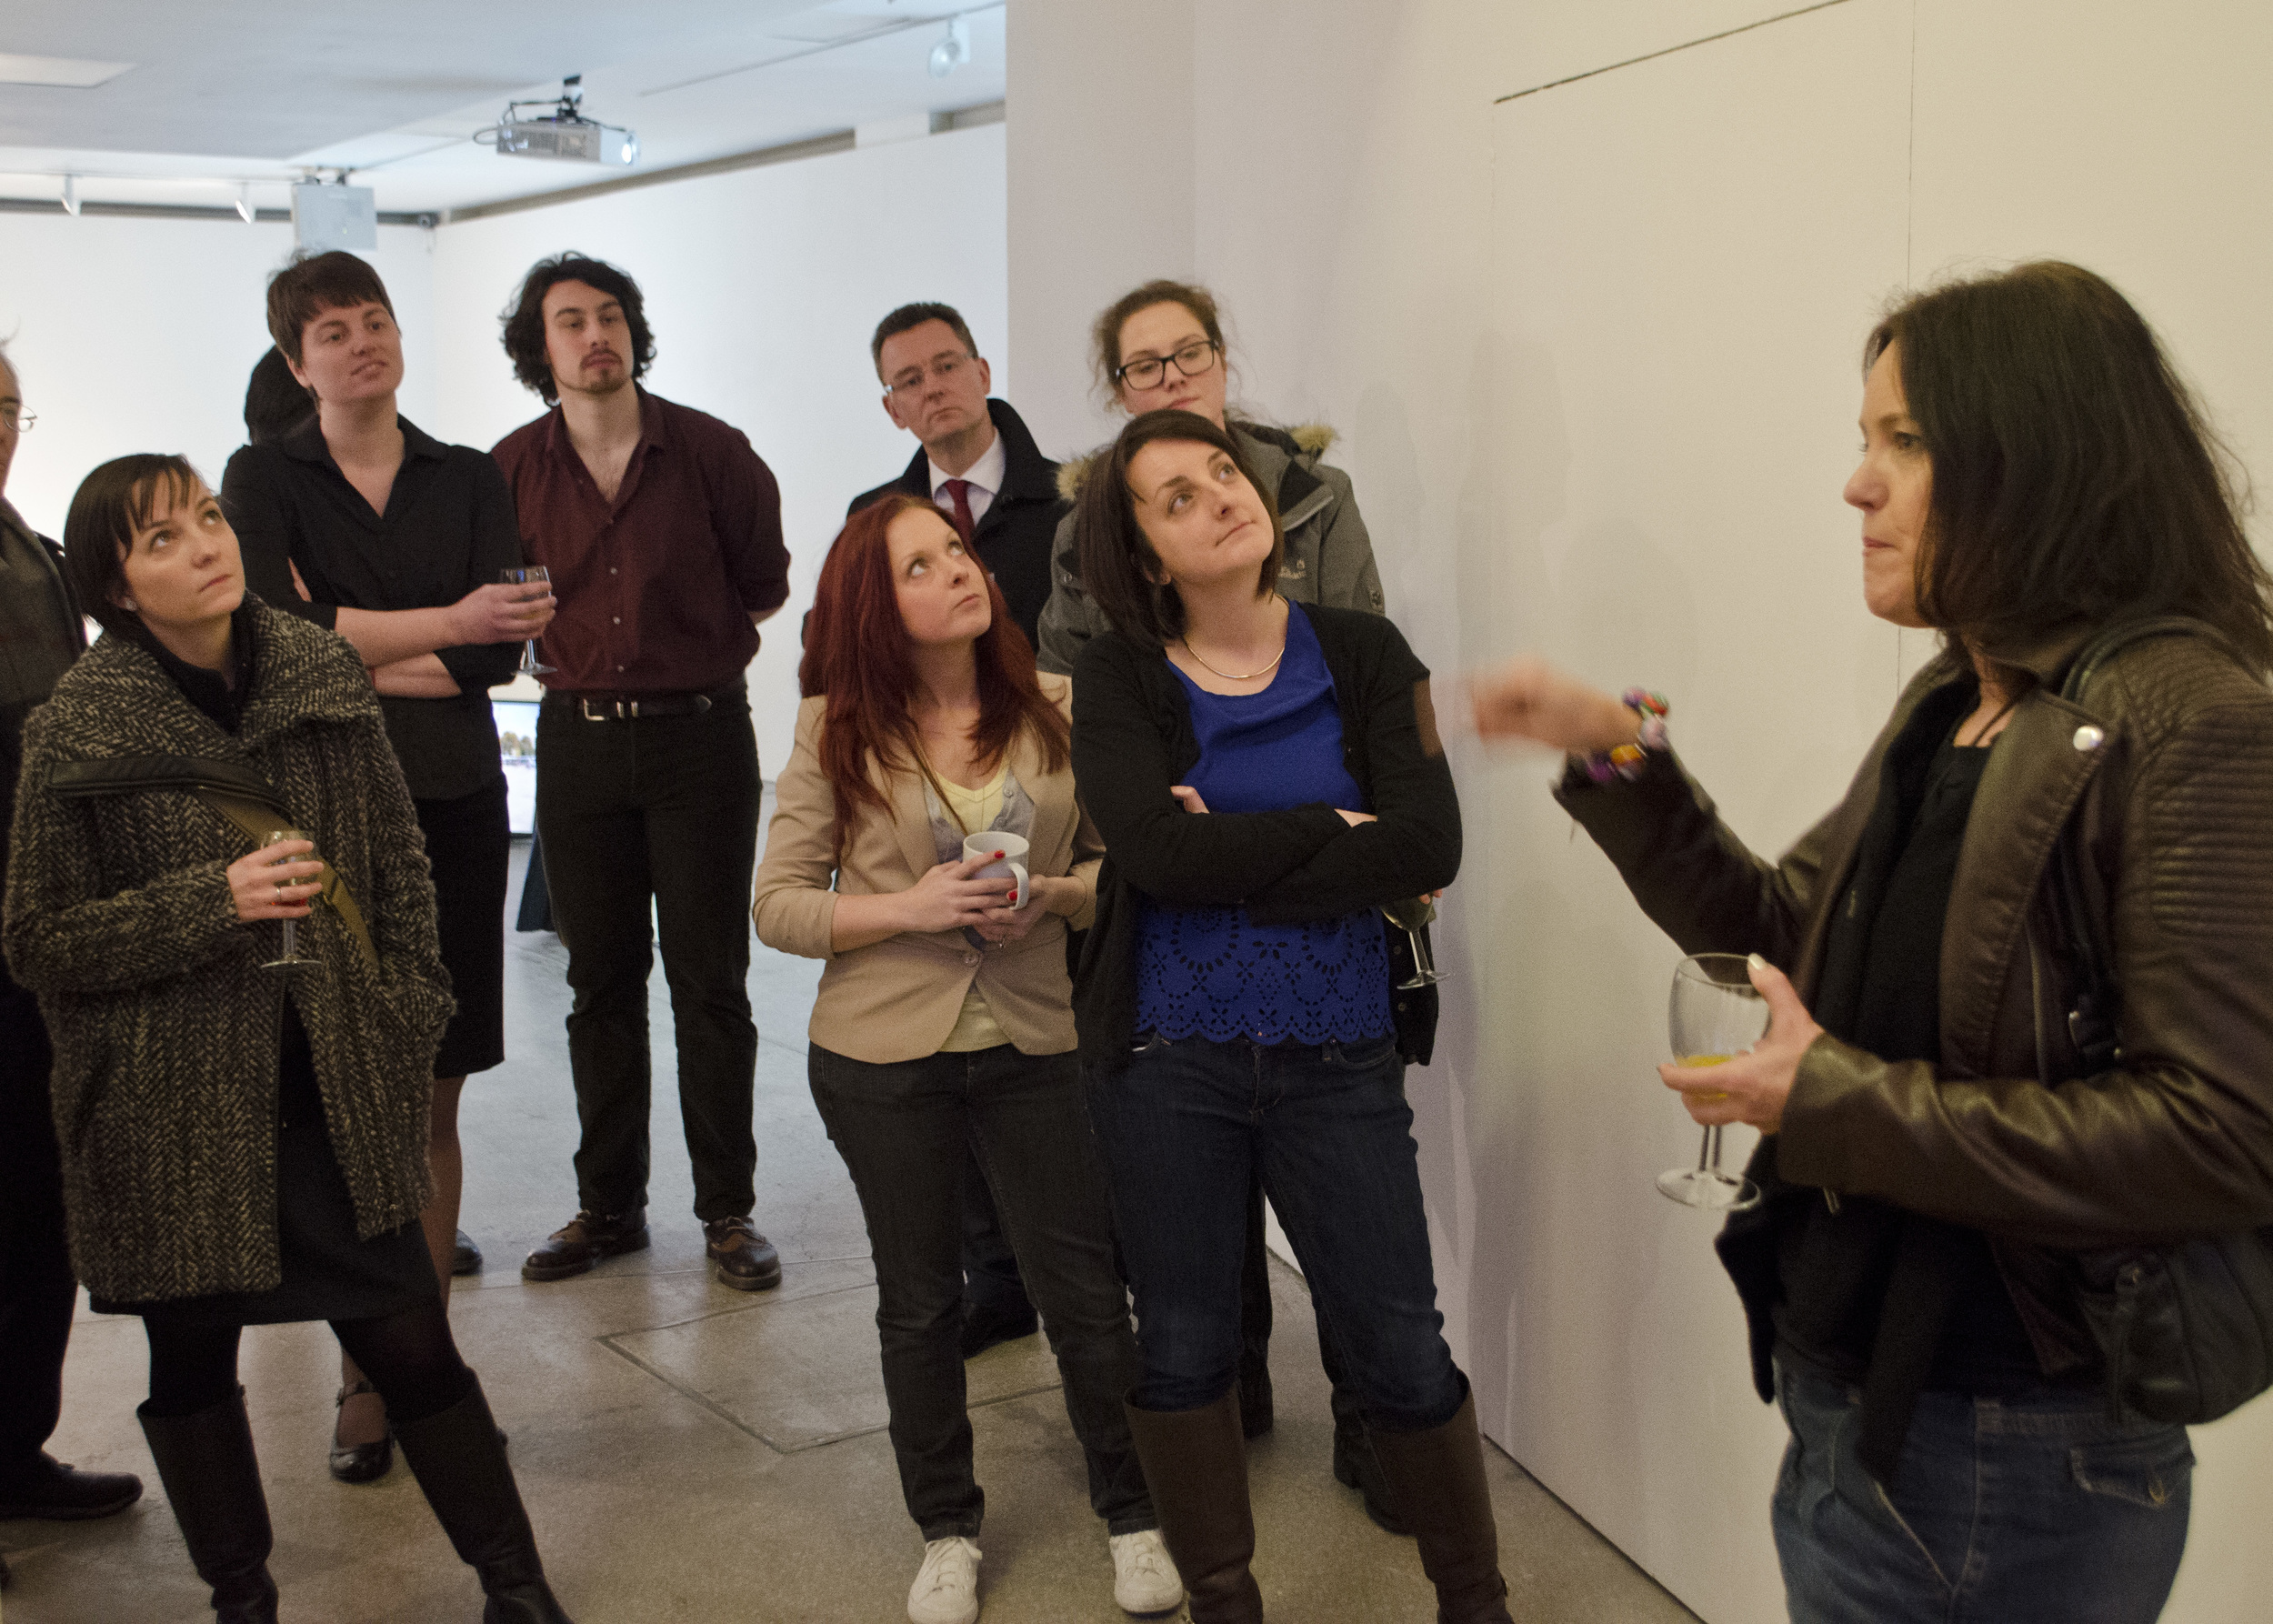 Private View Opening at Castlefield Gallery; talking about Shrinking Violet, 2759 Minutes.